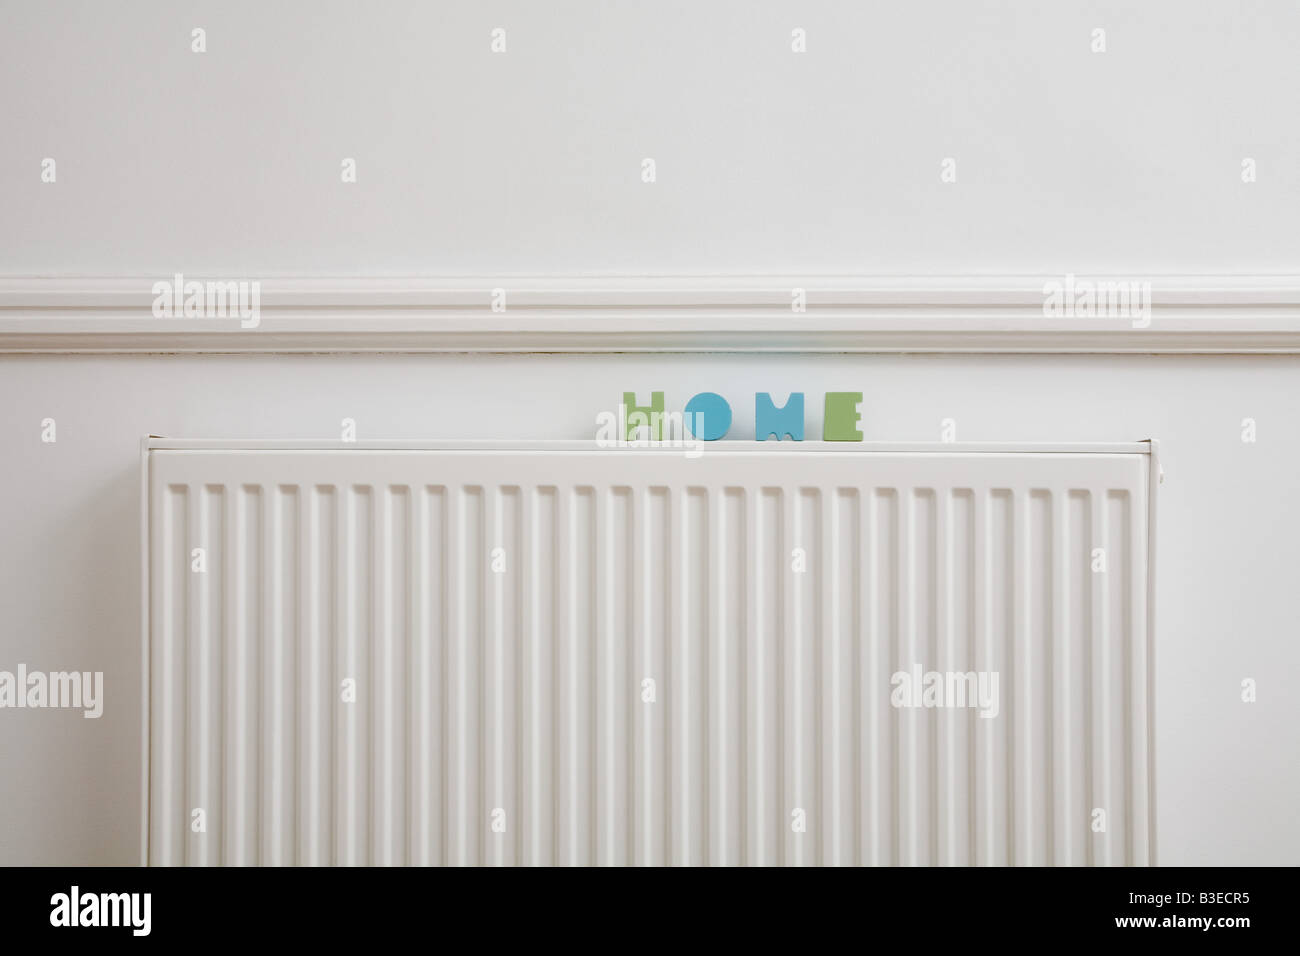 The word home on a radiator - Stock Image